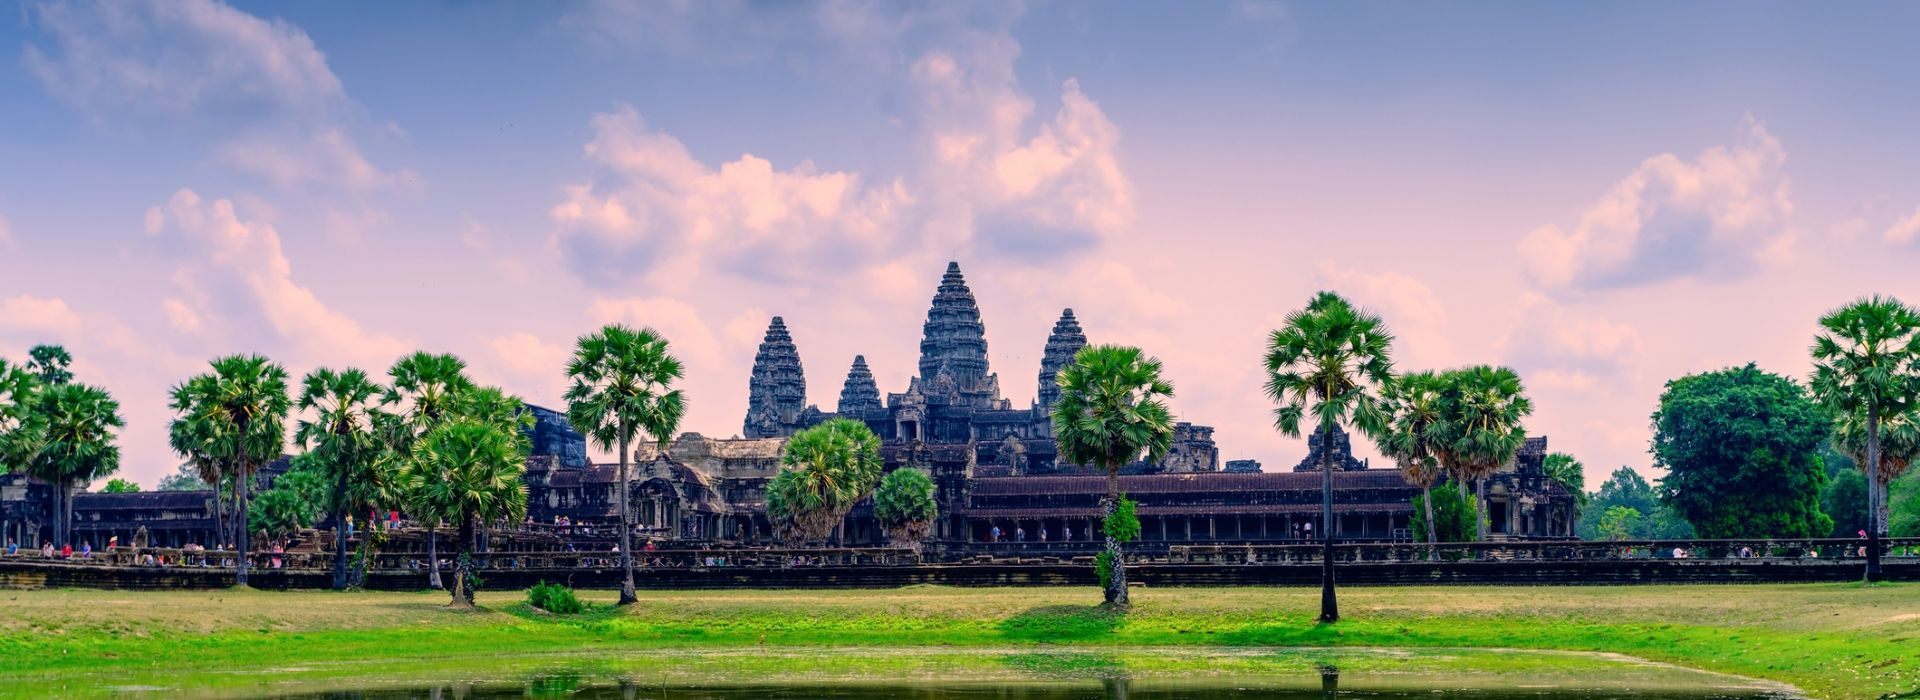 Special interests and hobbies Tours in Siem Reap